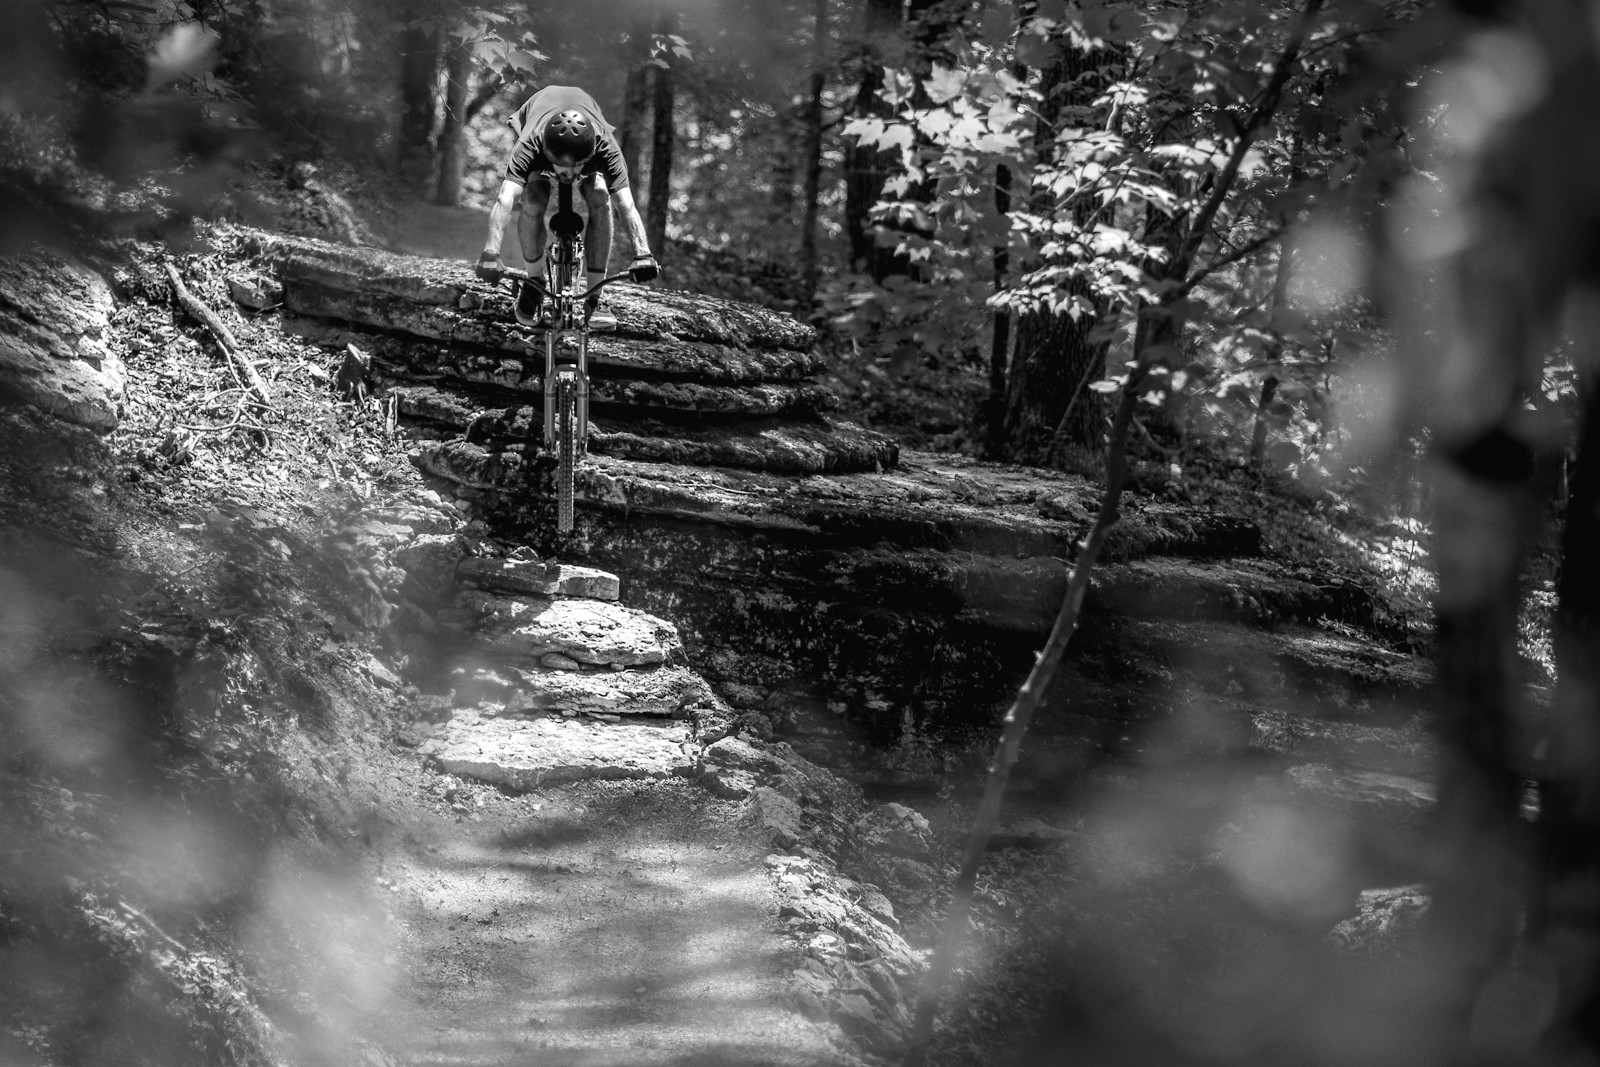 BW dropping in on my dirt jumper - slager - Mountain Biking Pictures - Vital MTB